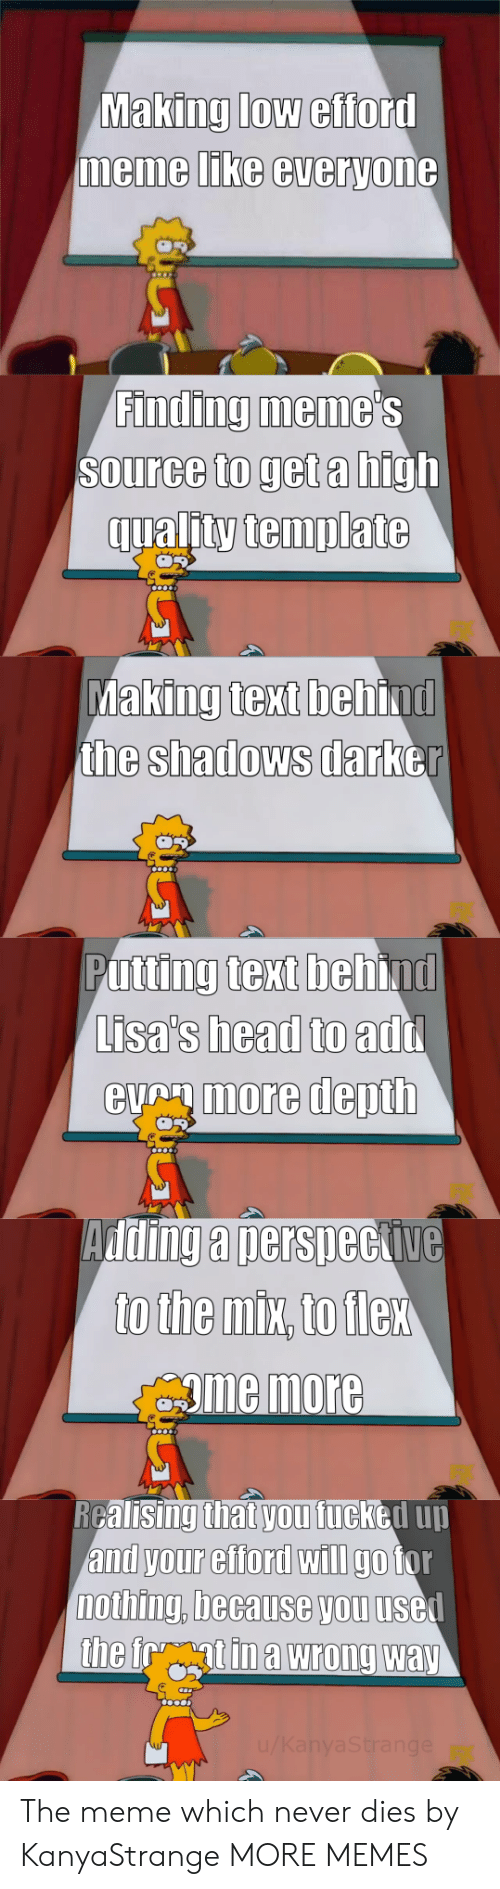 Beh: Making low efford  memme LIKe everyone  Finding meme  Source to get a high  qualitytemplate  king text beh  the shadows darb  Ma  ind  er  Putting text behind  Lisa's head to  eumore depth  add  Adding a nersneckive  gme more  RGalisingthat vou fucked uu  and your efford wIlI go tor  nothing, because you usel The meme which never dies by KanyaStrange MORE MEMES